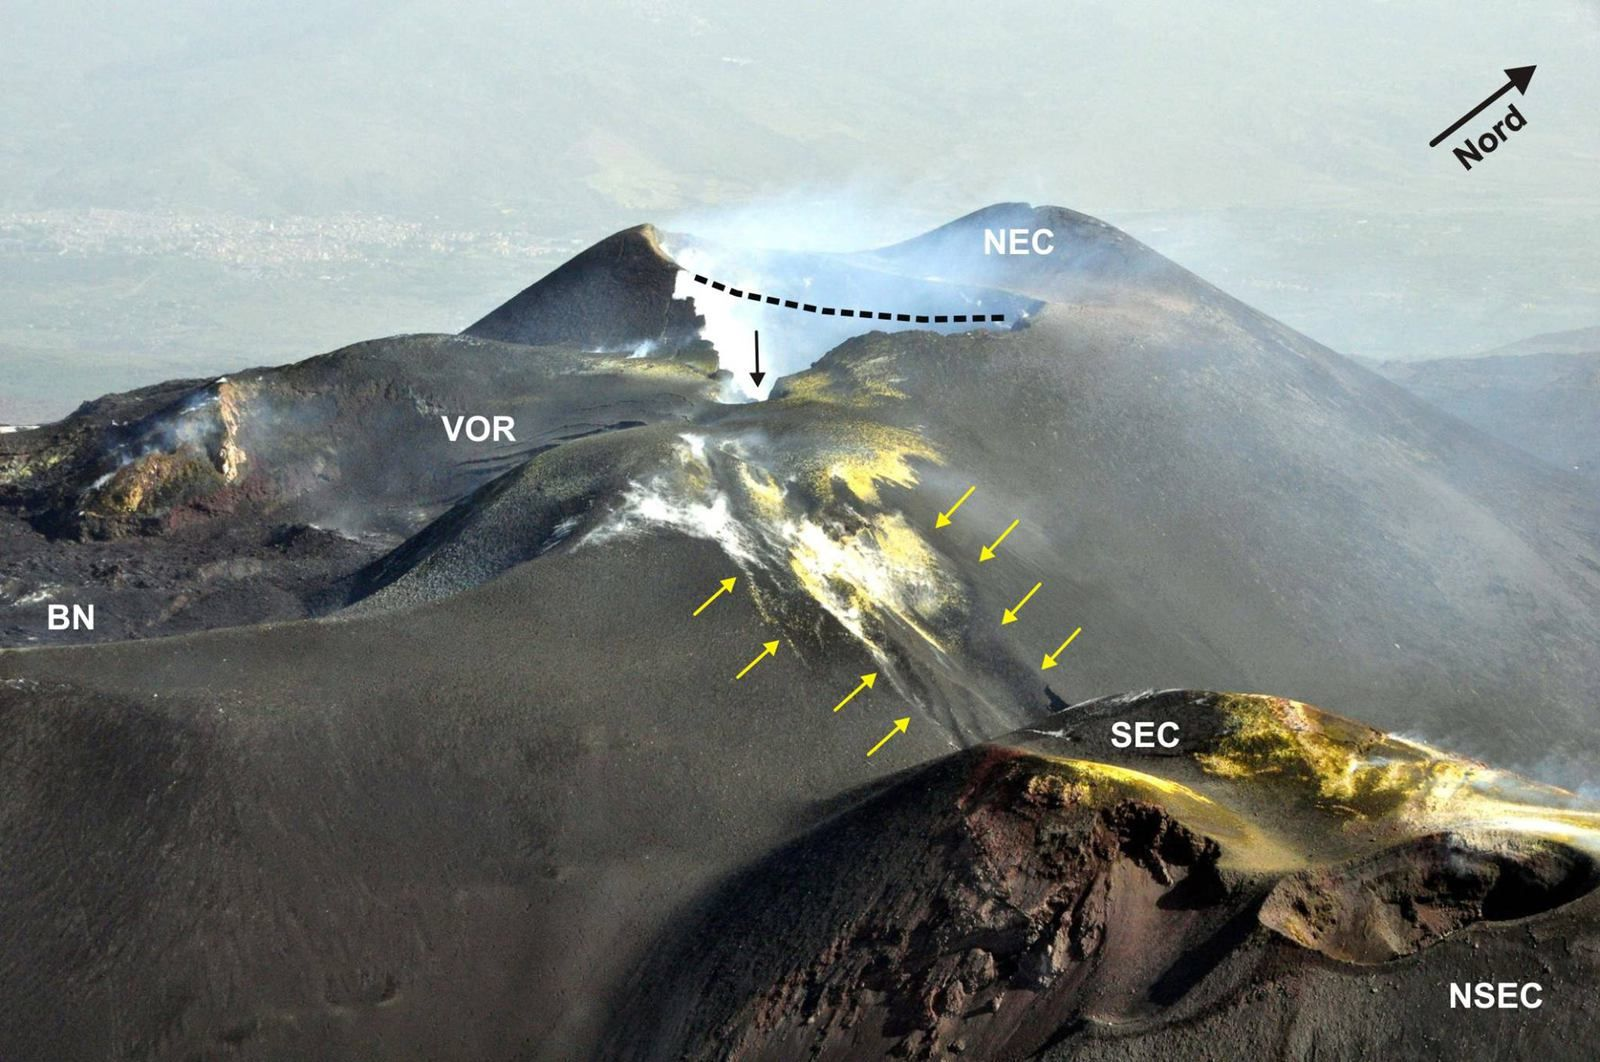 Etna région sommitale - changements morphologiques - photo et notes de Marco Néri